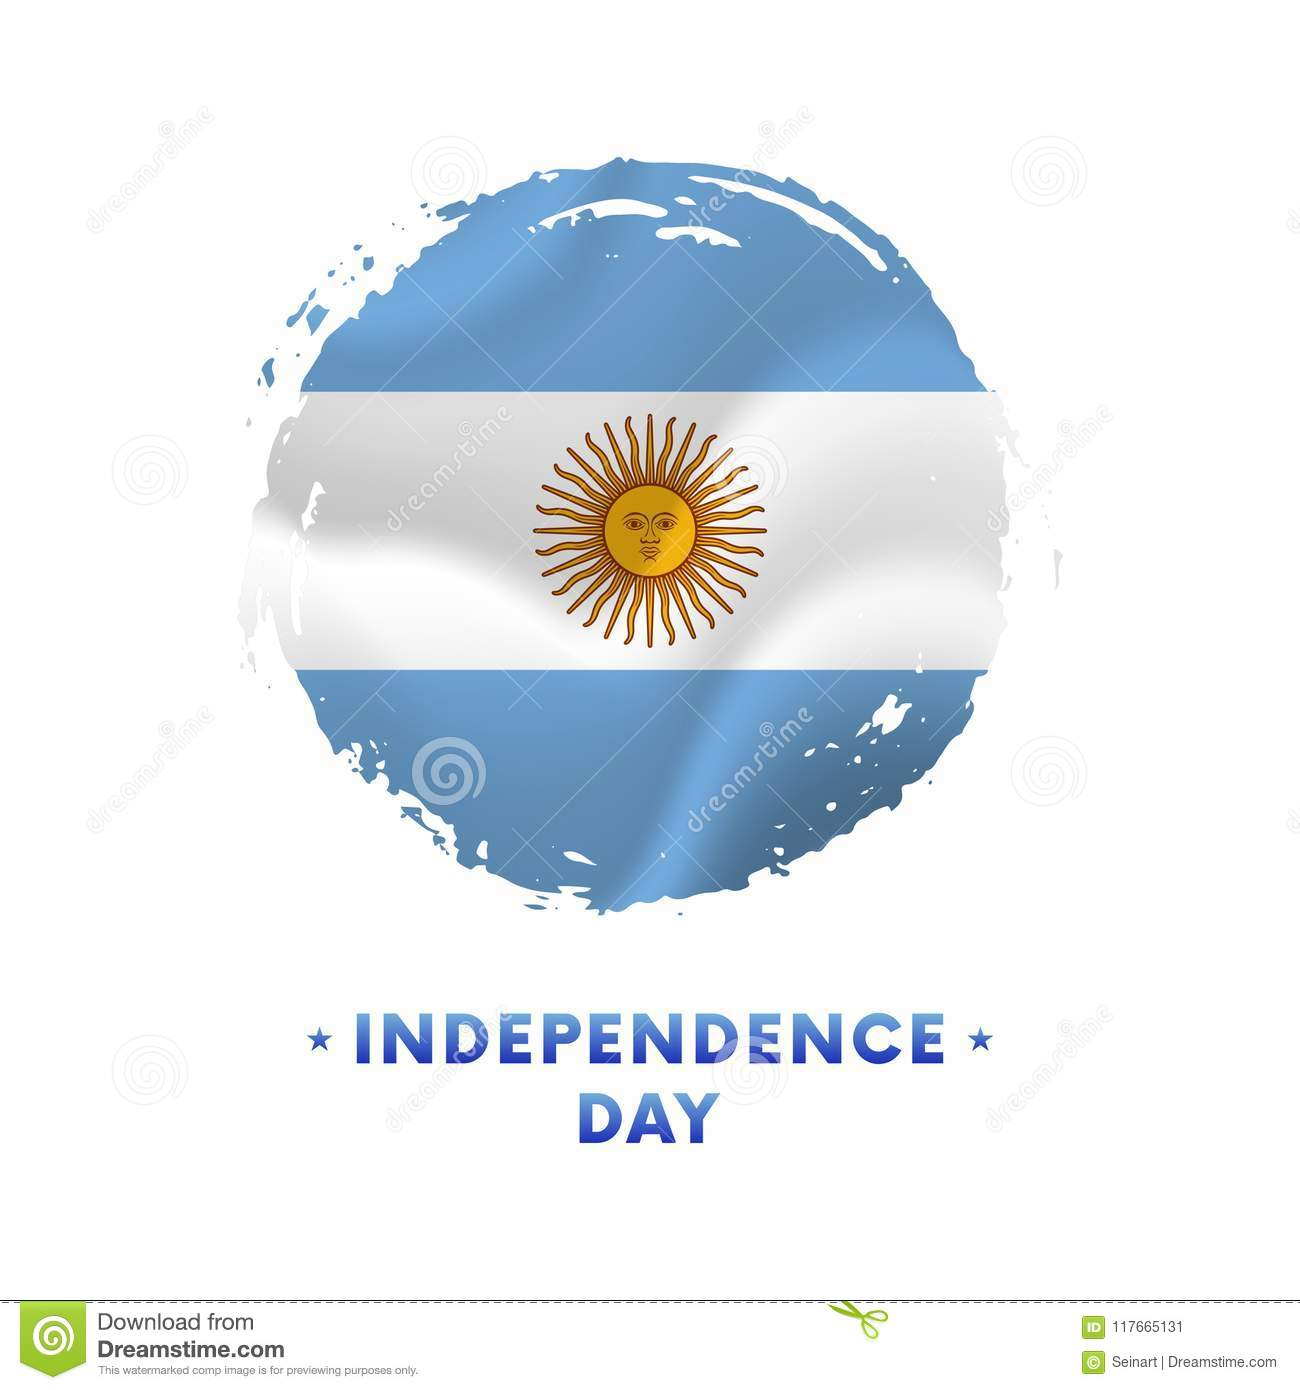 Banner or poster of Argentina Independence Day celebration. Waving flag of Argentina, brush stroke background. Vector illustration